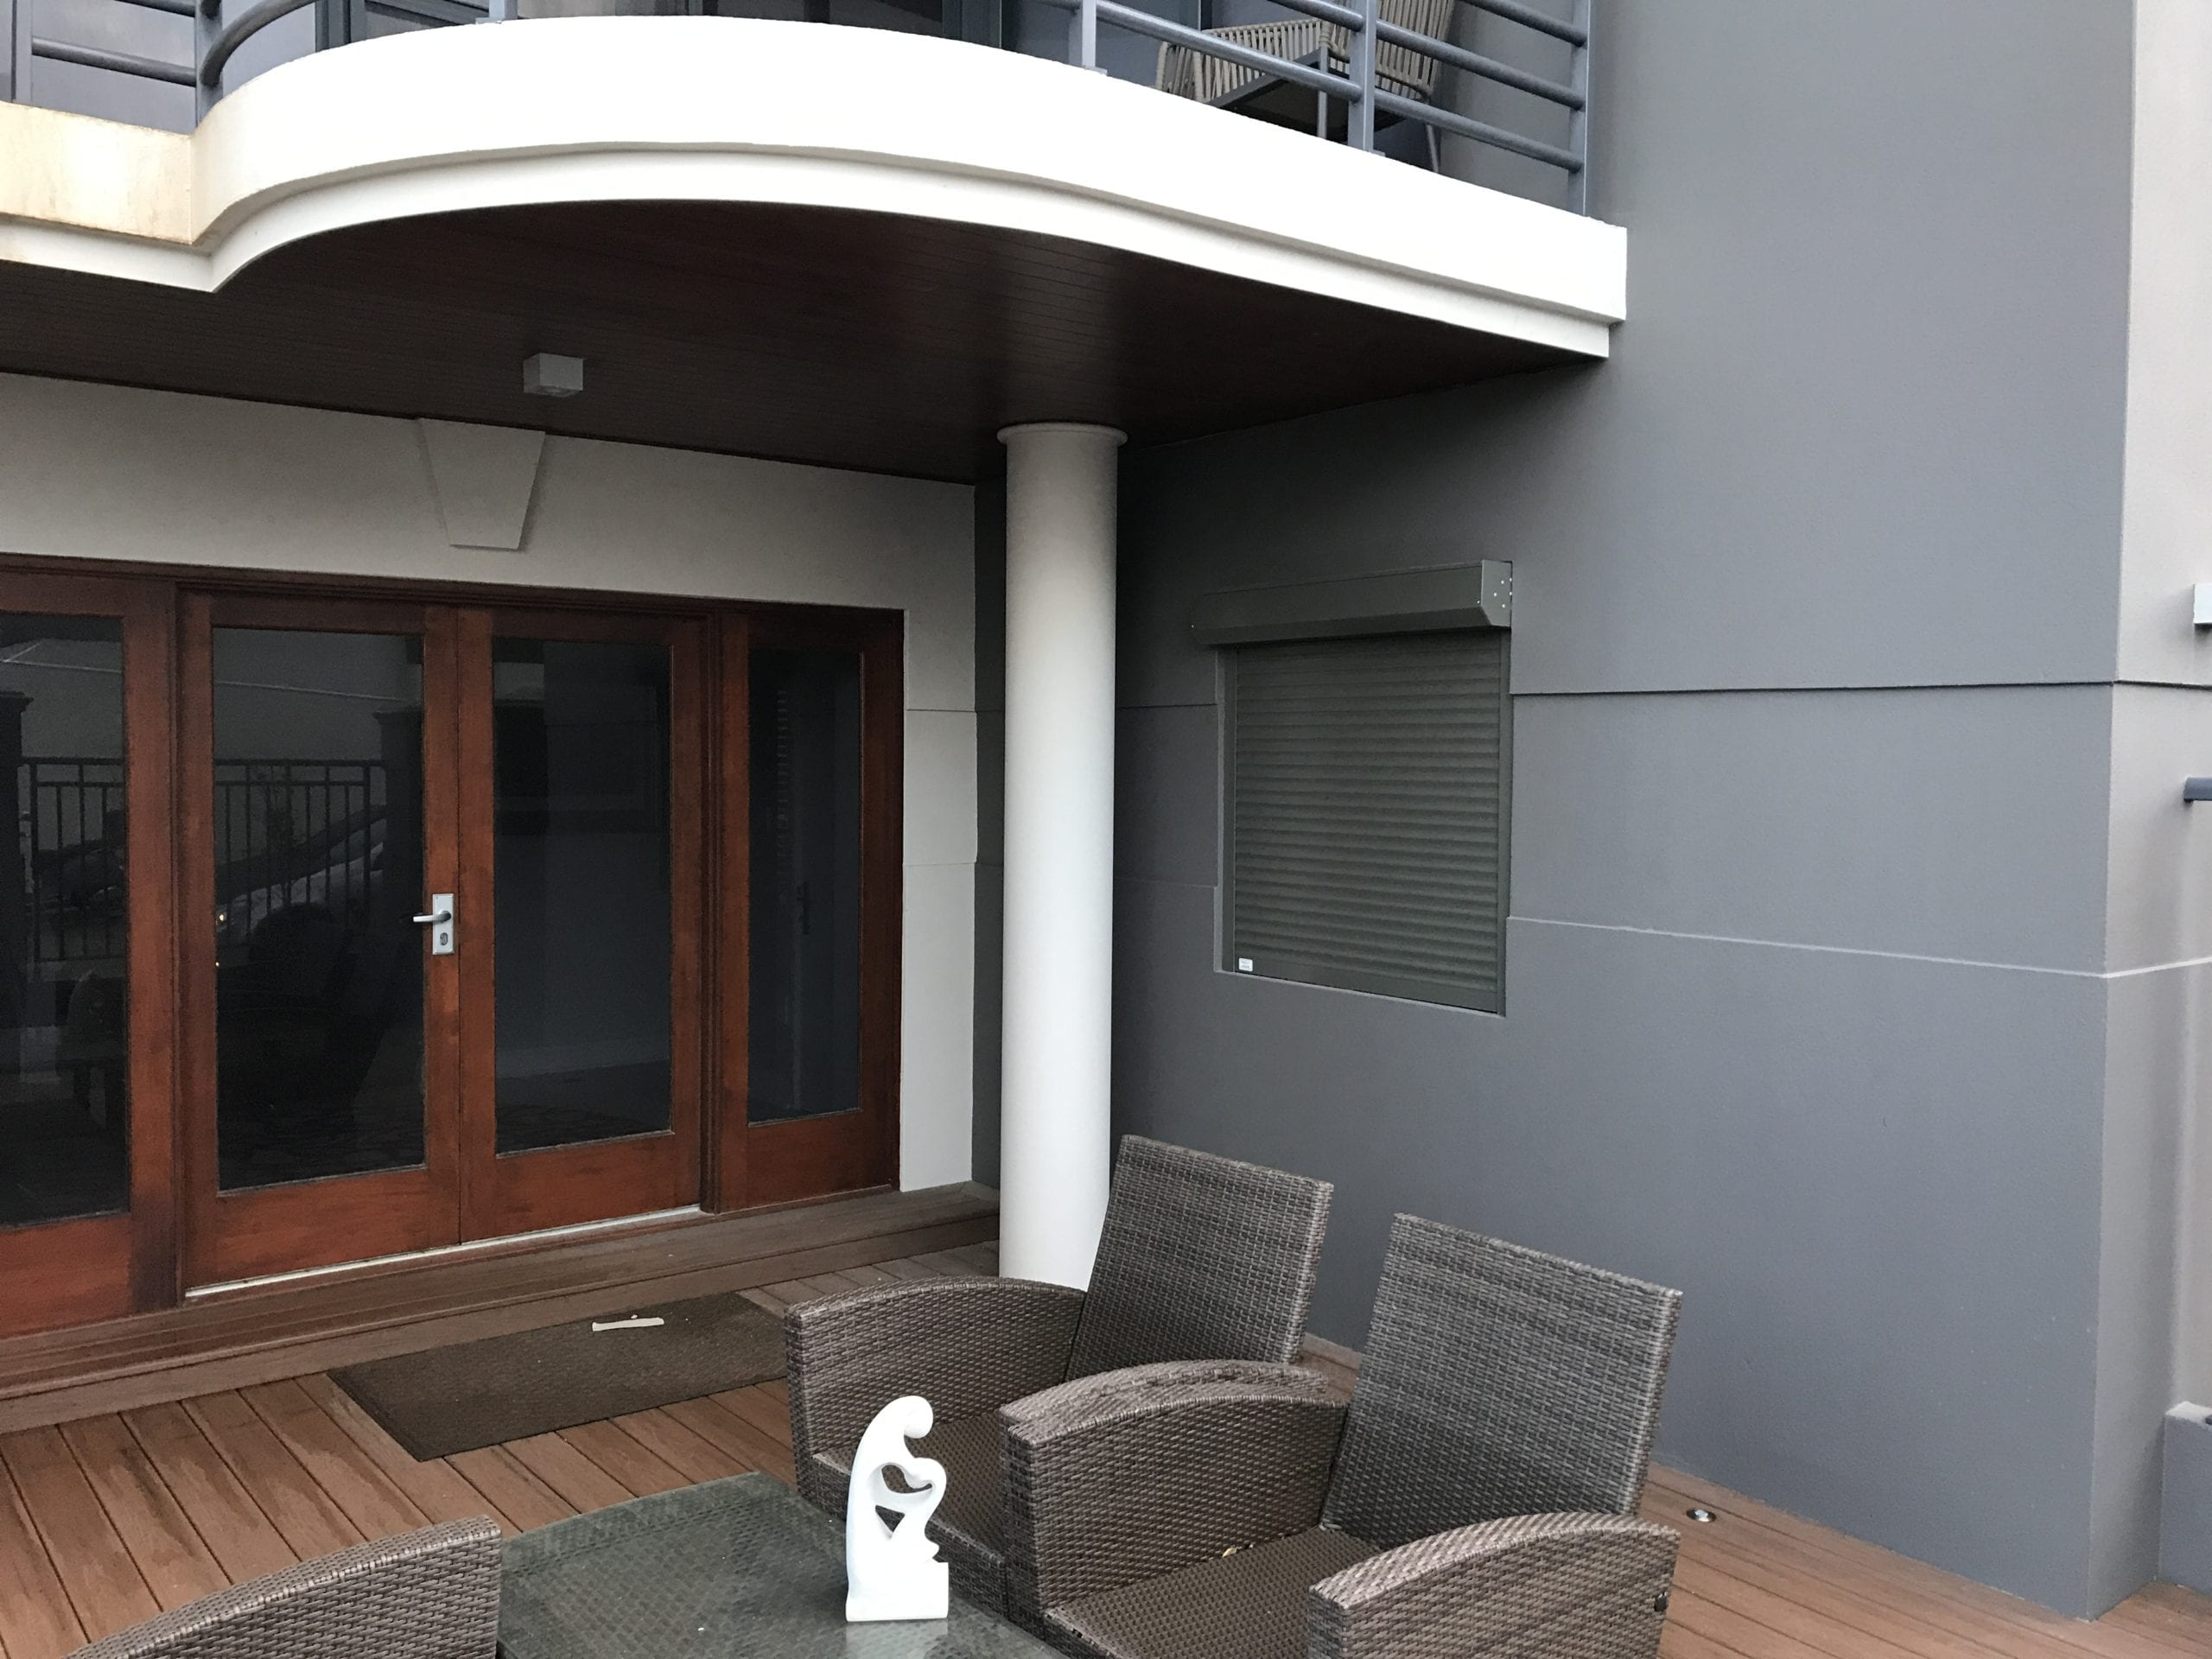 Are you looking for Half Price Roller Shutters in Perth?